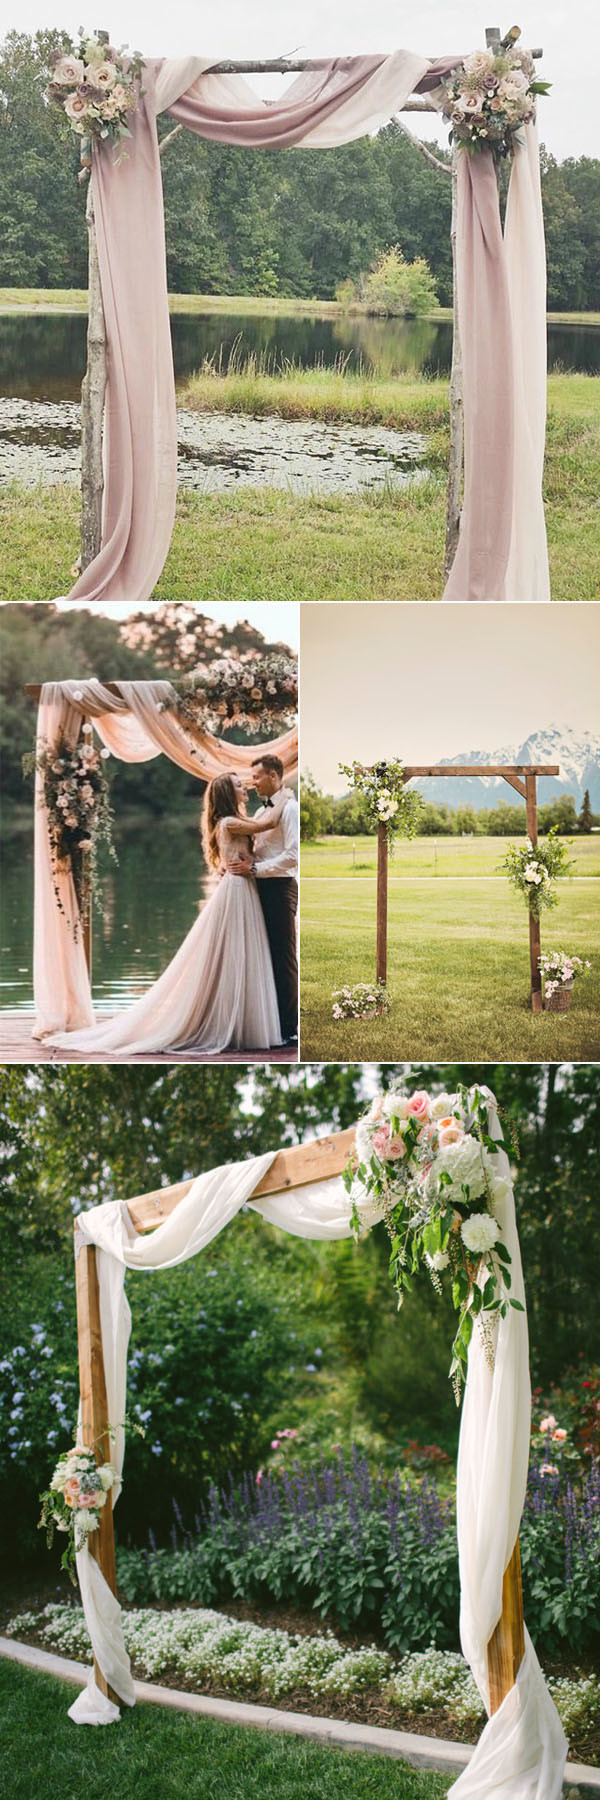 Superieur Rustic Wedding Arches For Your Outdoor Wedding Ideas